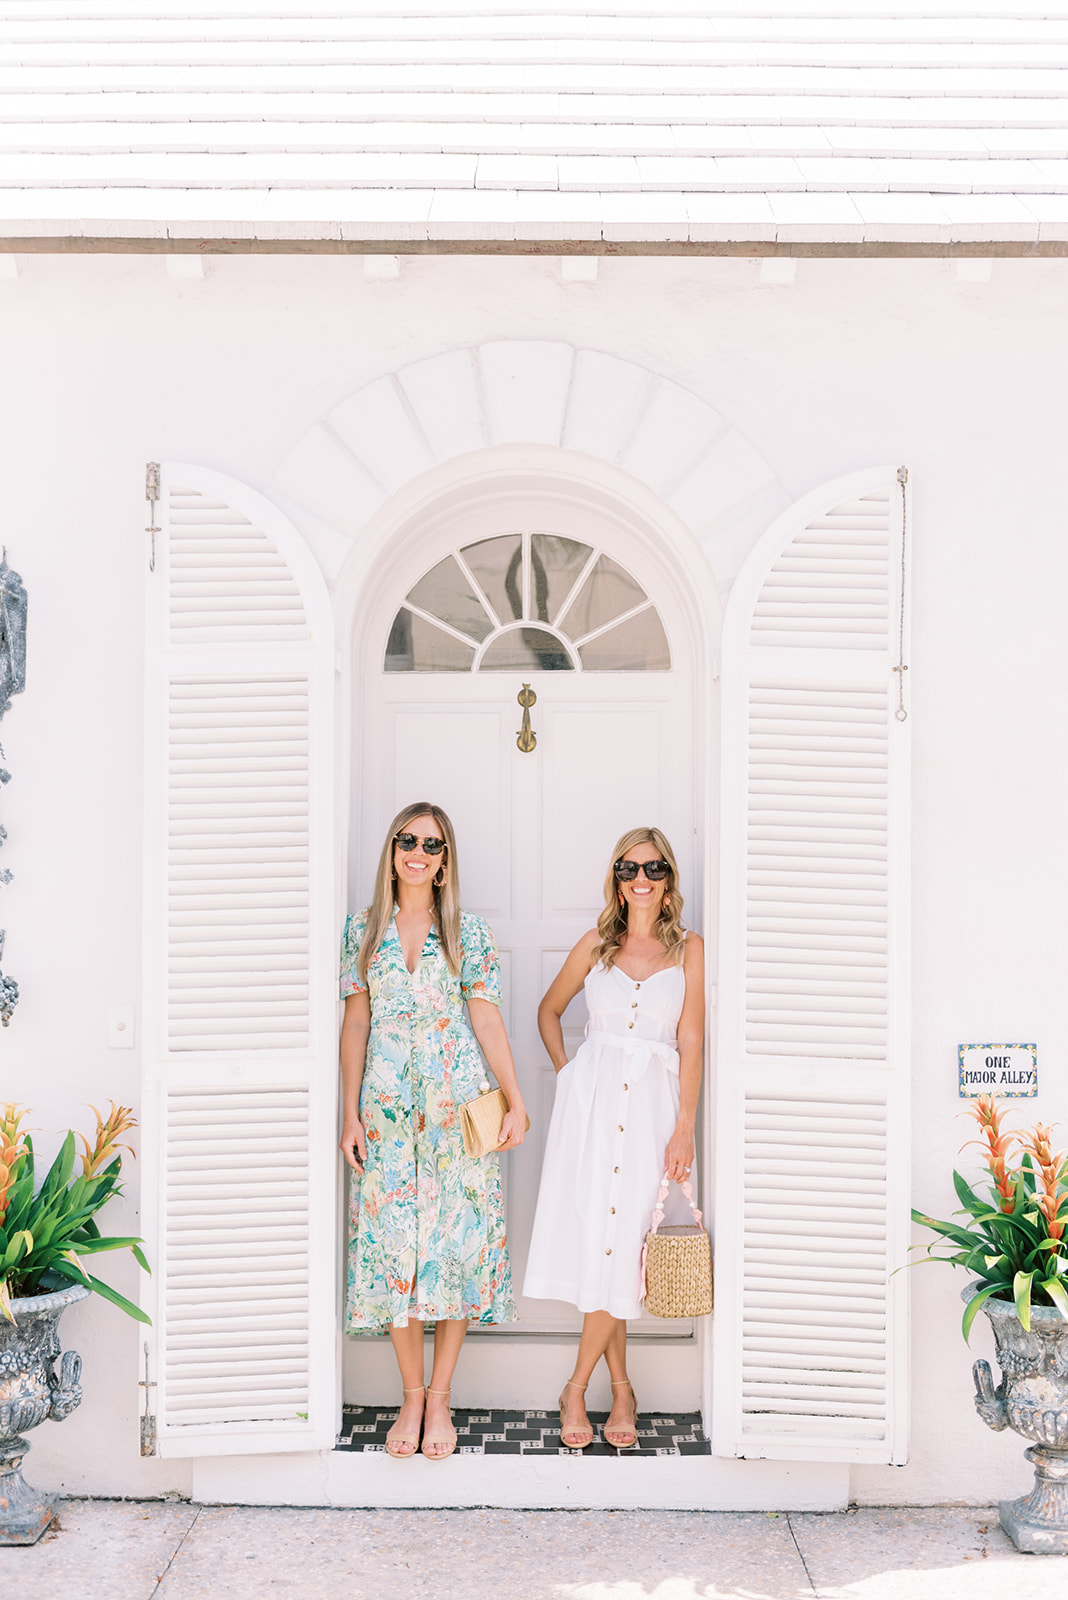 Fashion: Sarah Flint x Palm Beach Lately